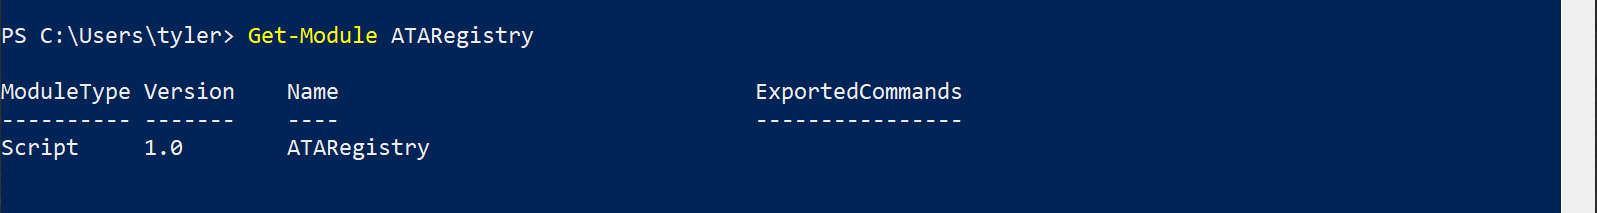 No exported commands